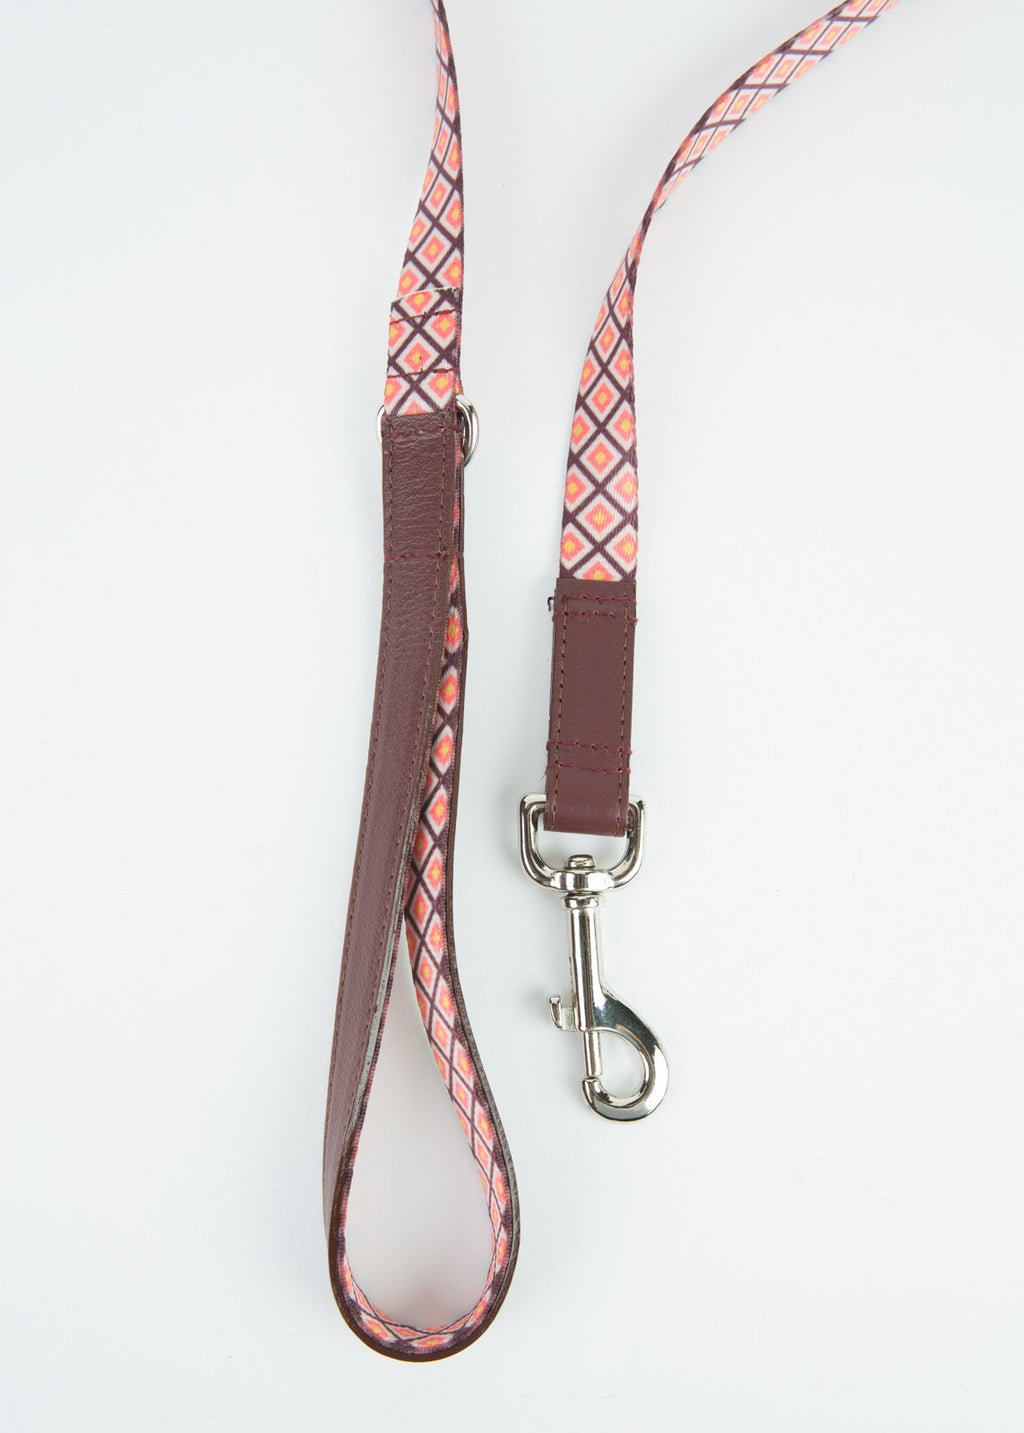 Ware of the Dog Square Webbing Dog Leash